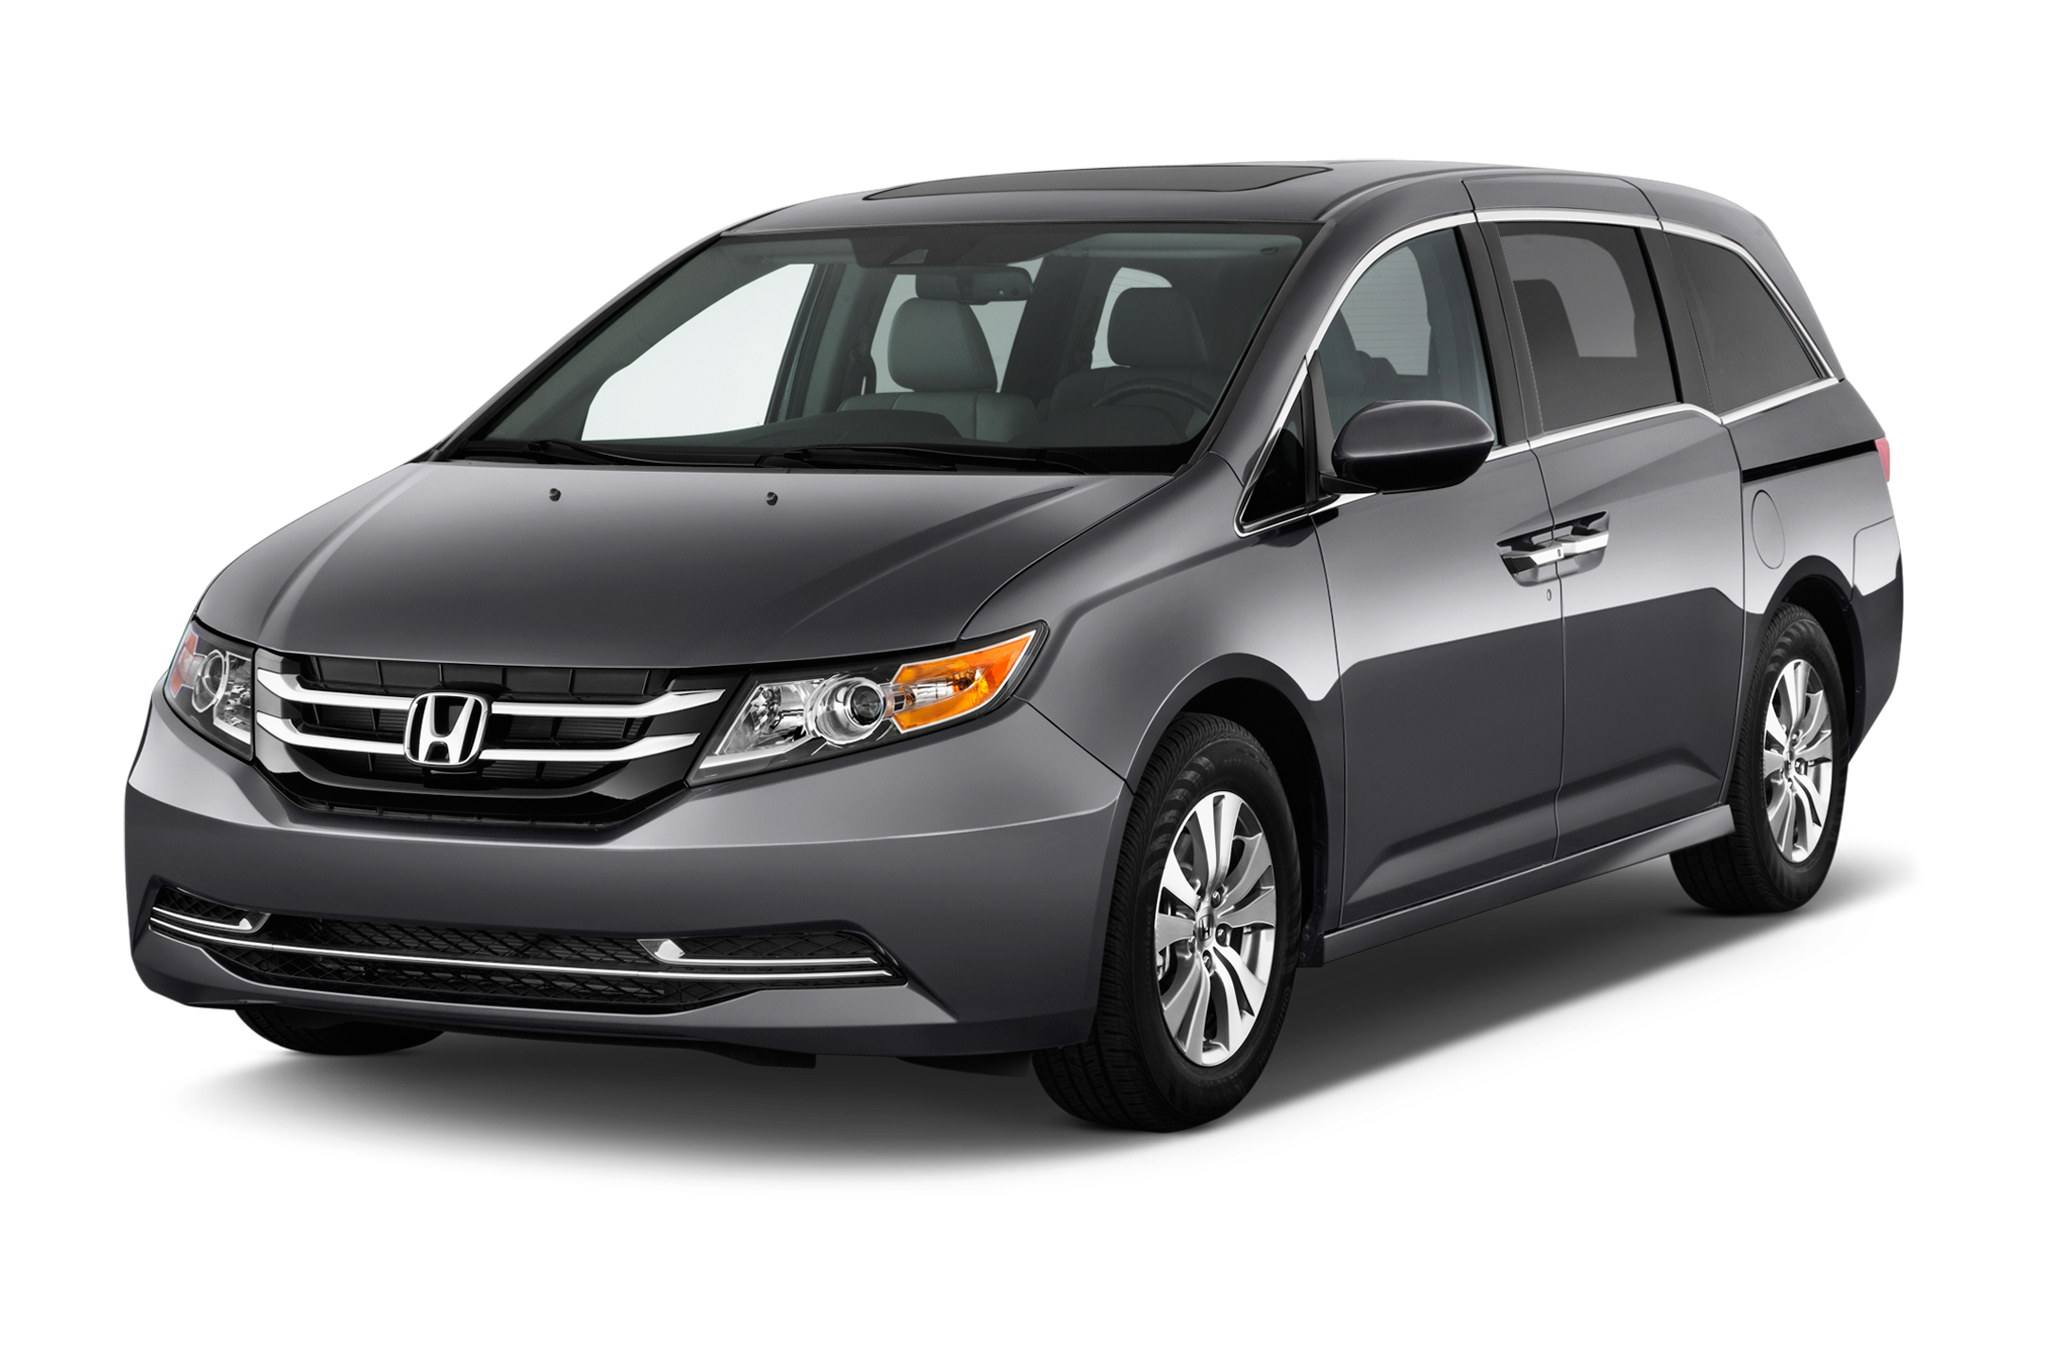 2014 honda odyssey is first minivan rated iihs top safety for 2014 honda odyssey mpg